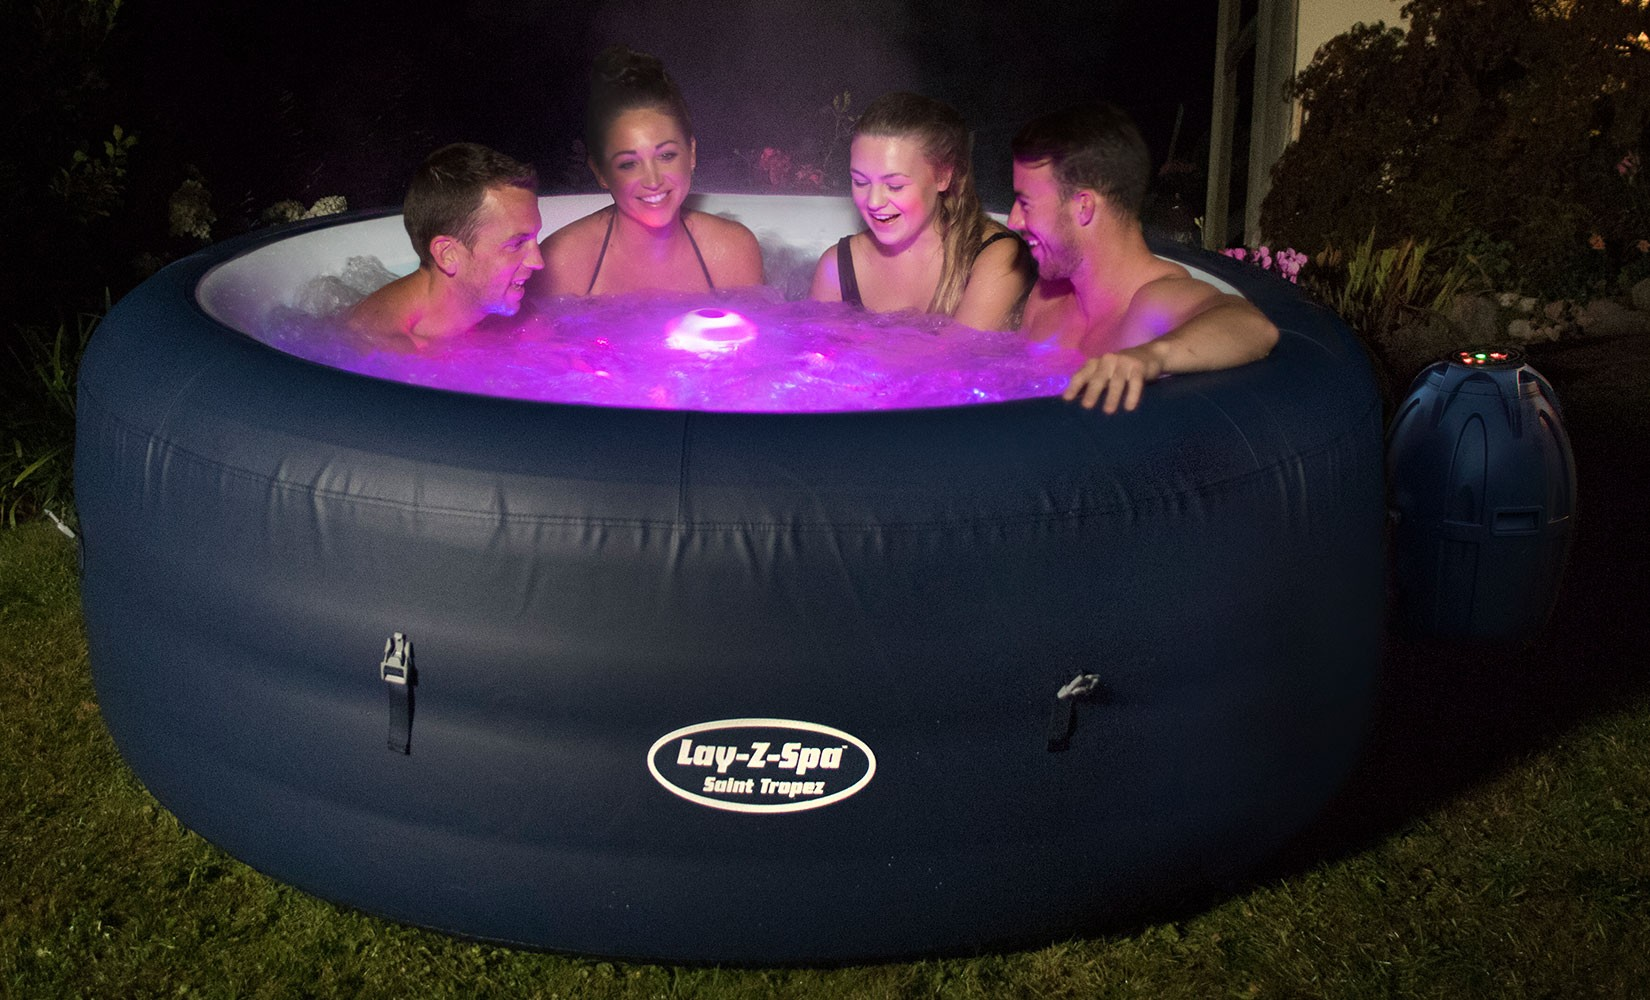 New York Lay Z Spa 1 - Hot Tub Hire - www.bigbouncybriers.co